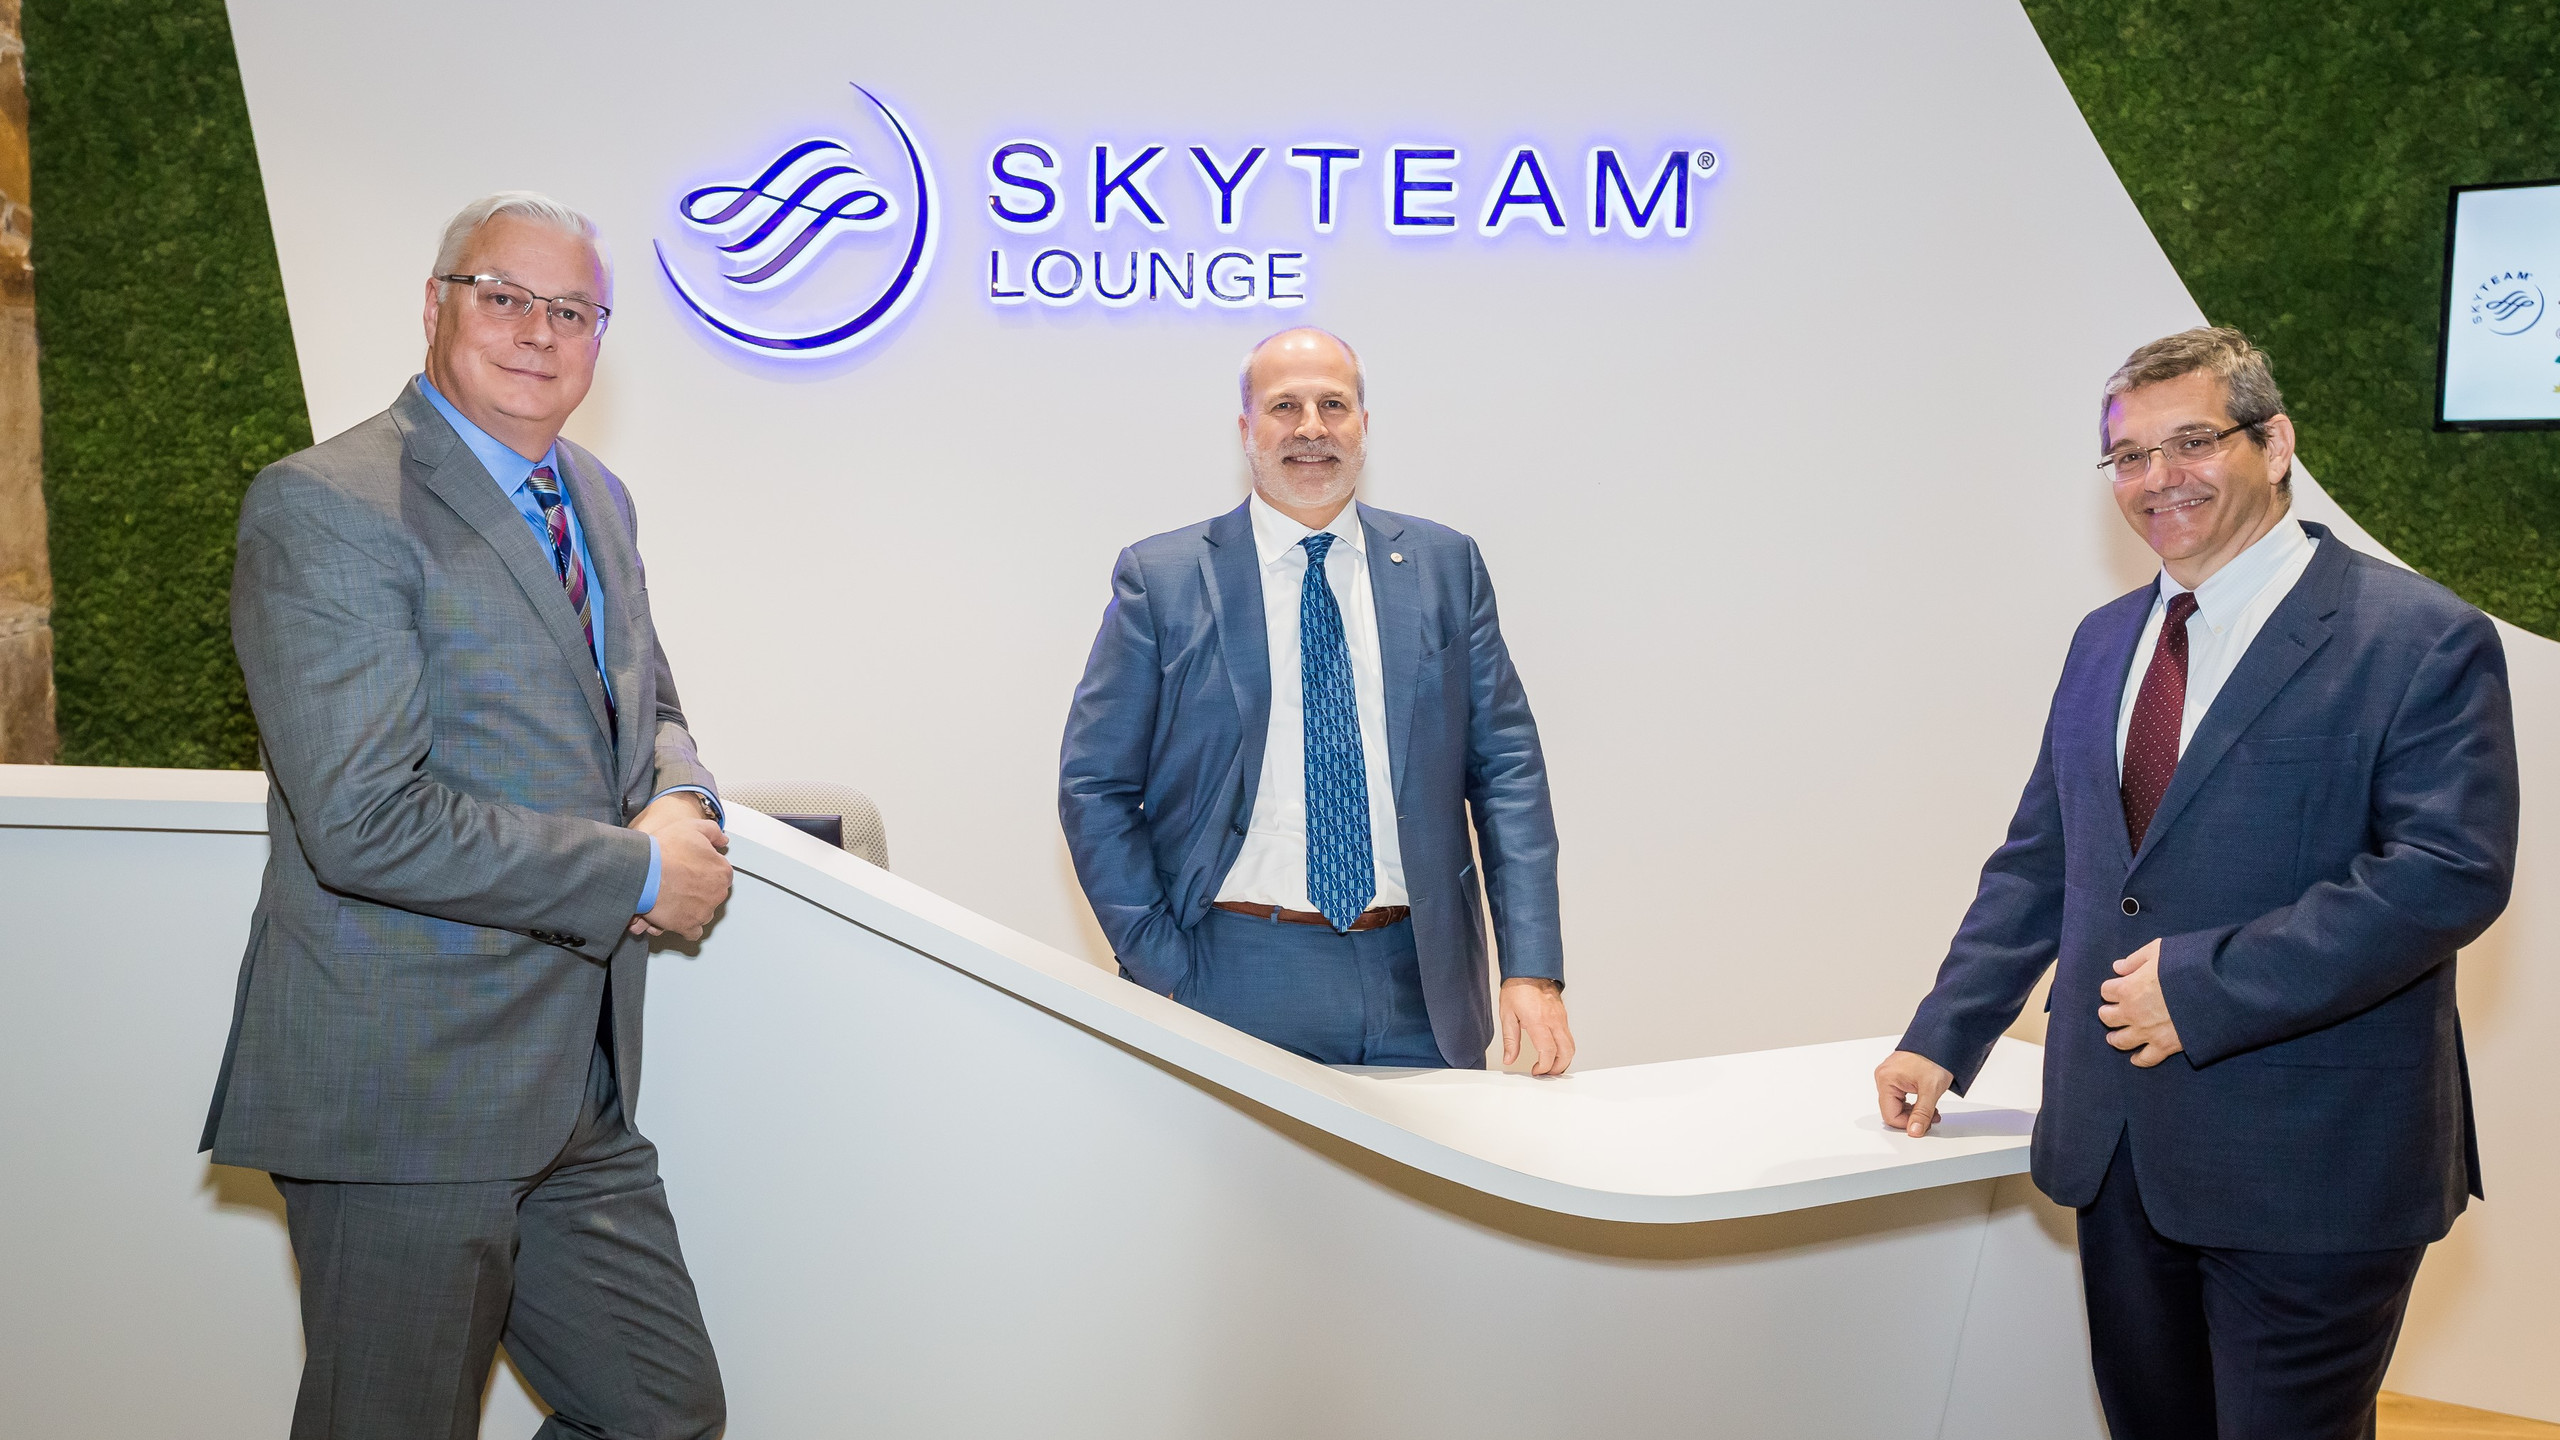 Craig Richmond, Perry Cantarutti, Jeffrey Stern at the SkyTeam  Lounge Reception, Vancouver